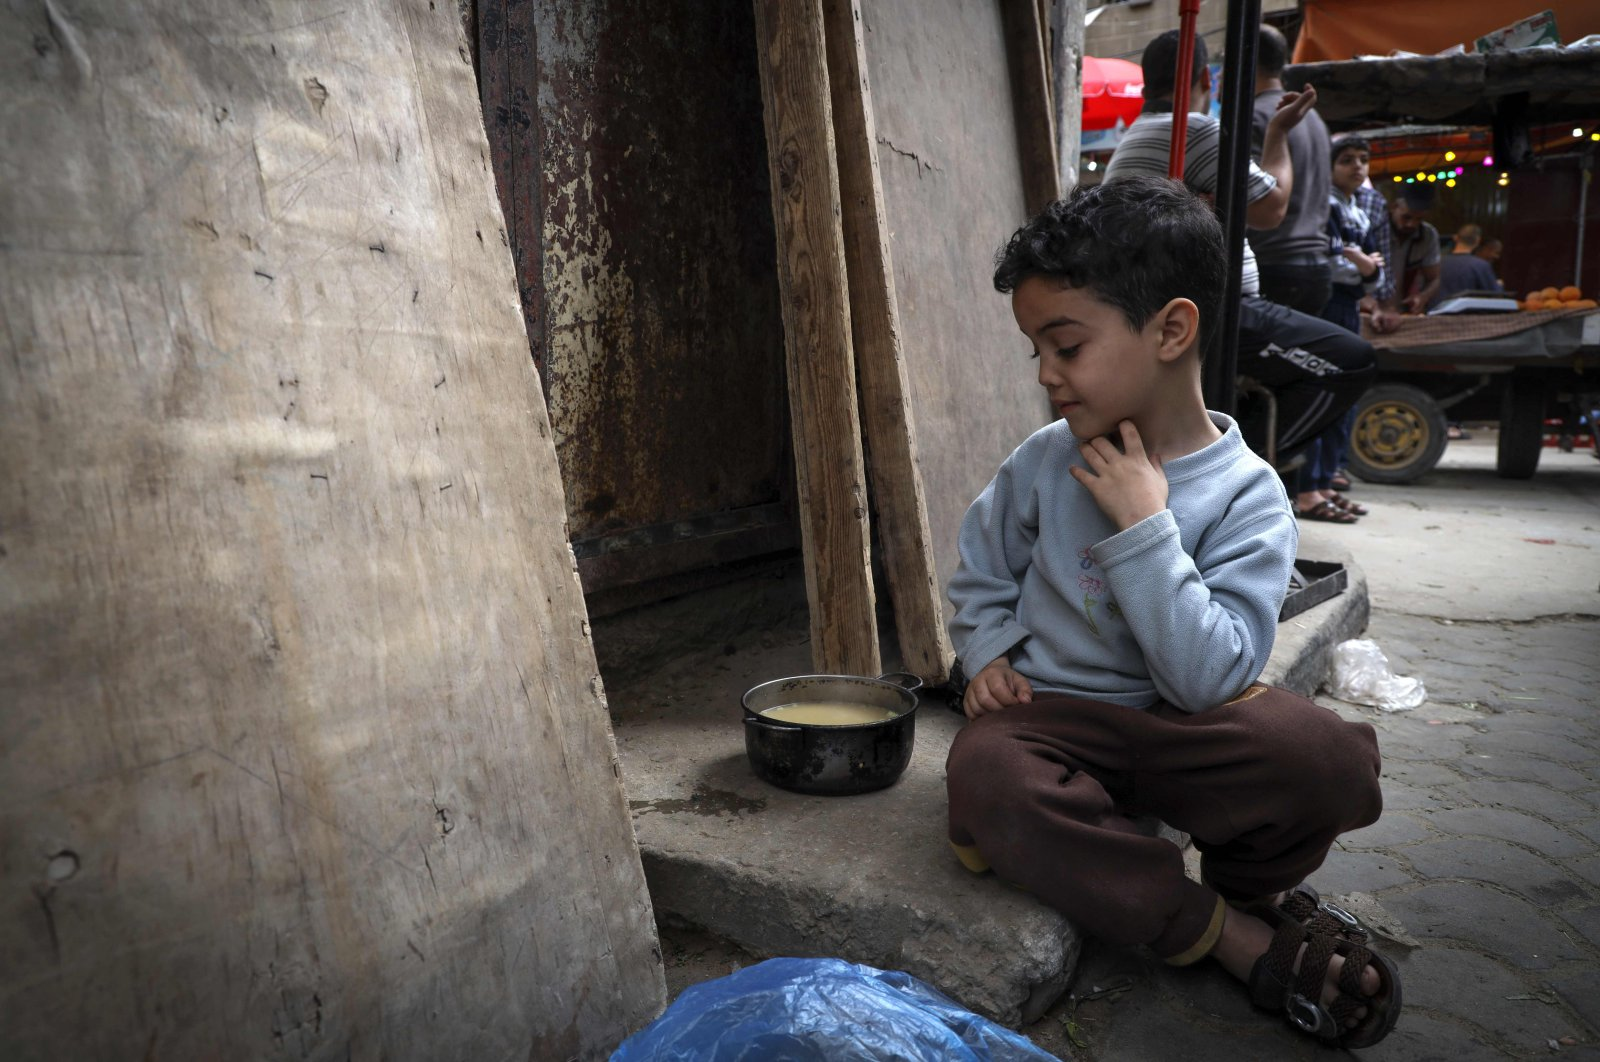 A Palestinian boy looks at his portion of soup, given out to poor families during the holy month of Ramadan, Gaza City, Palestine, April 24, 2020. (AFP Photo)